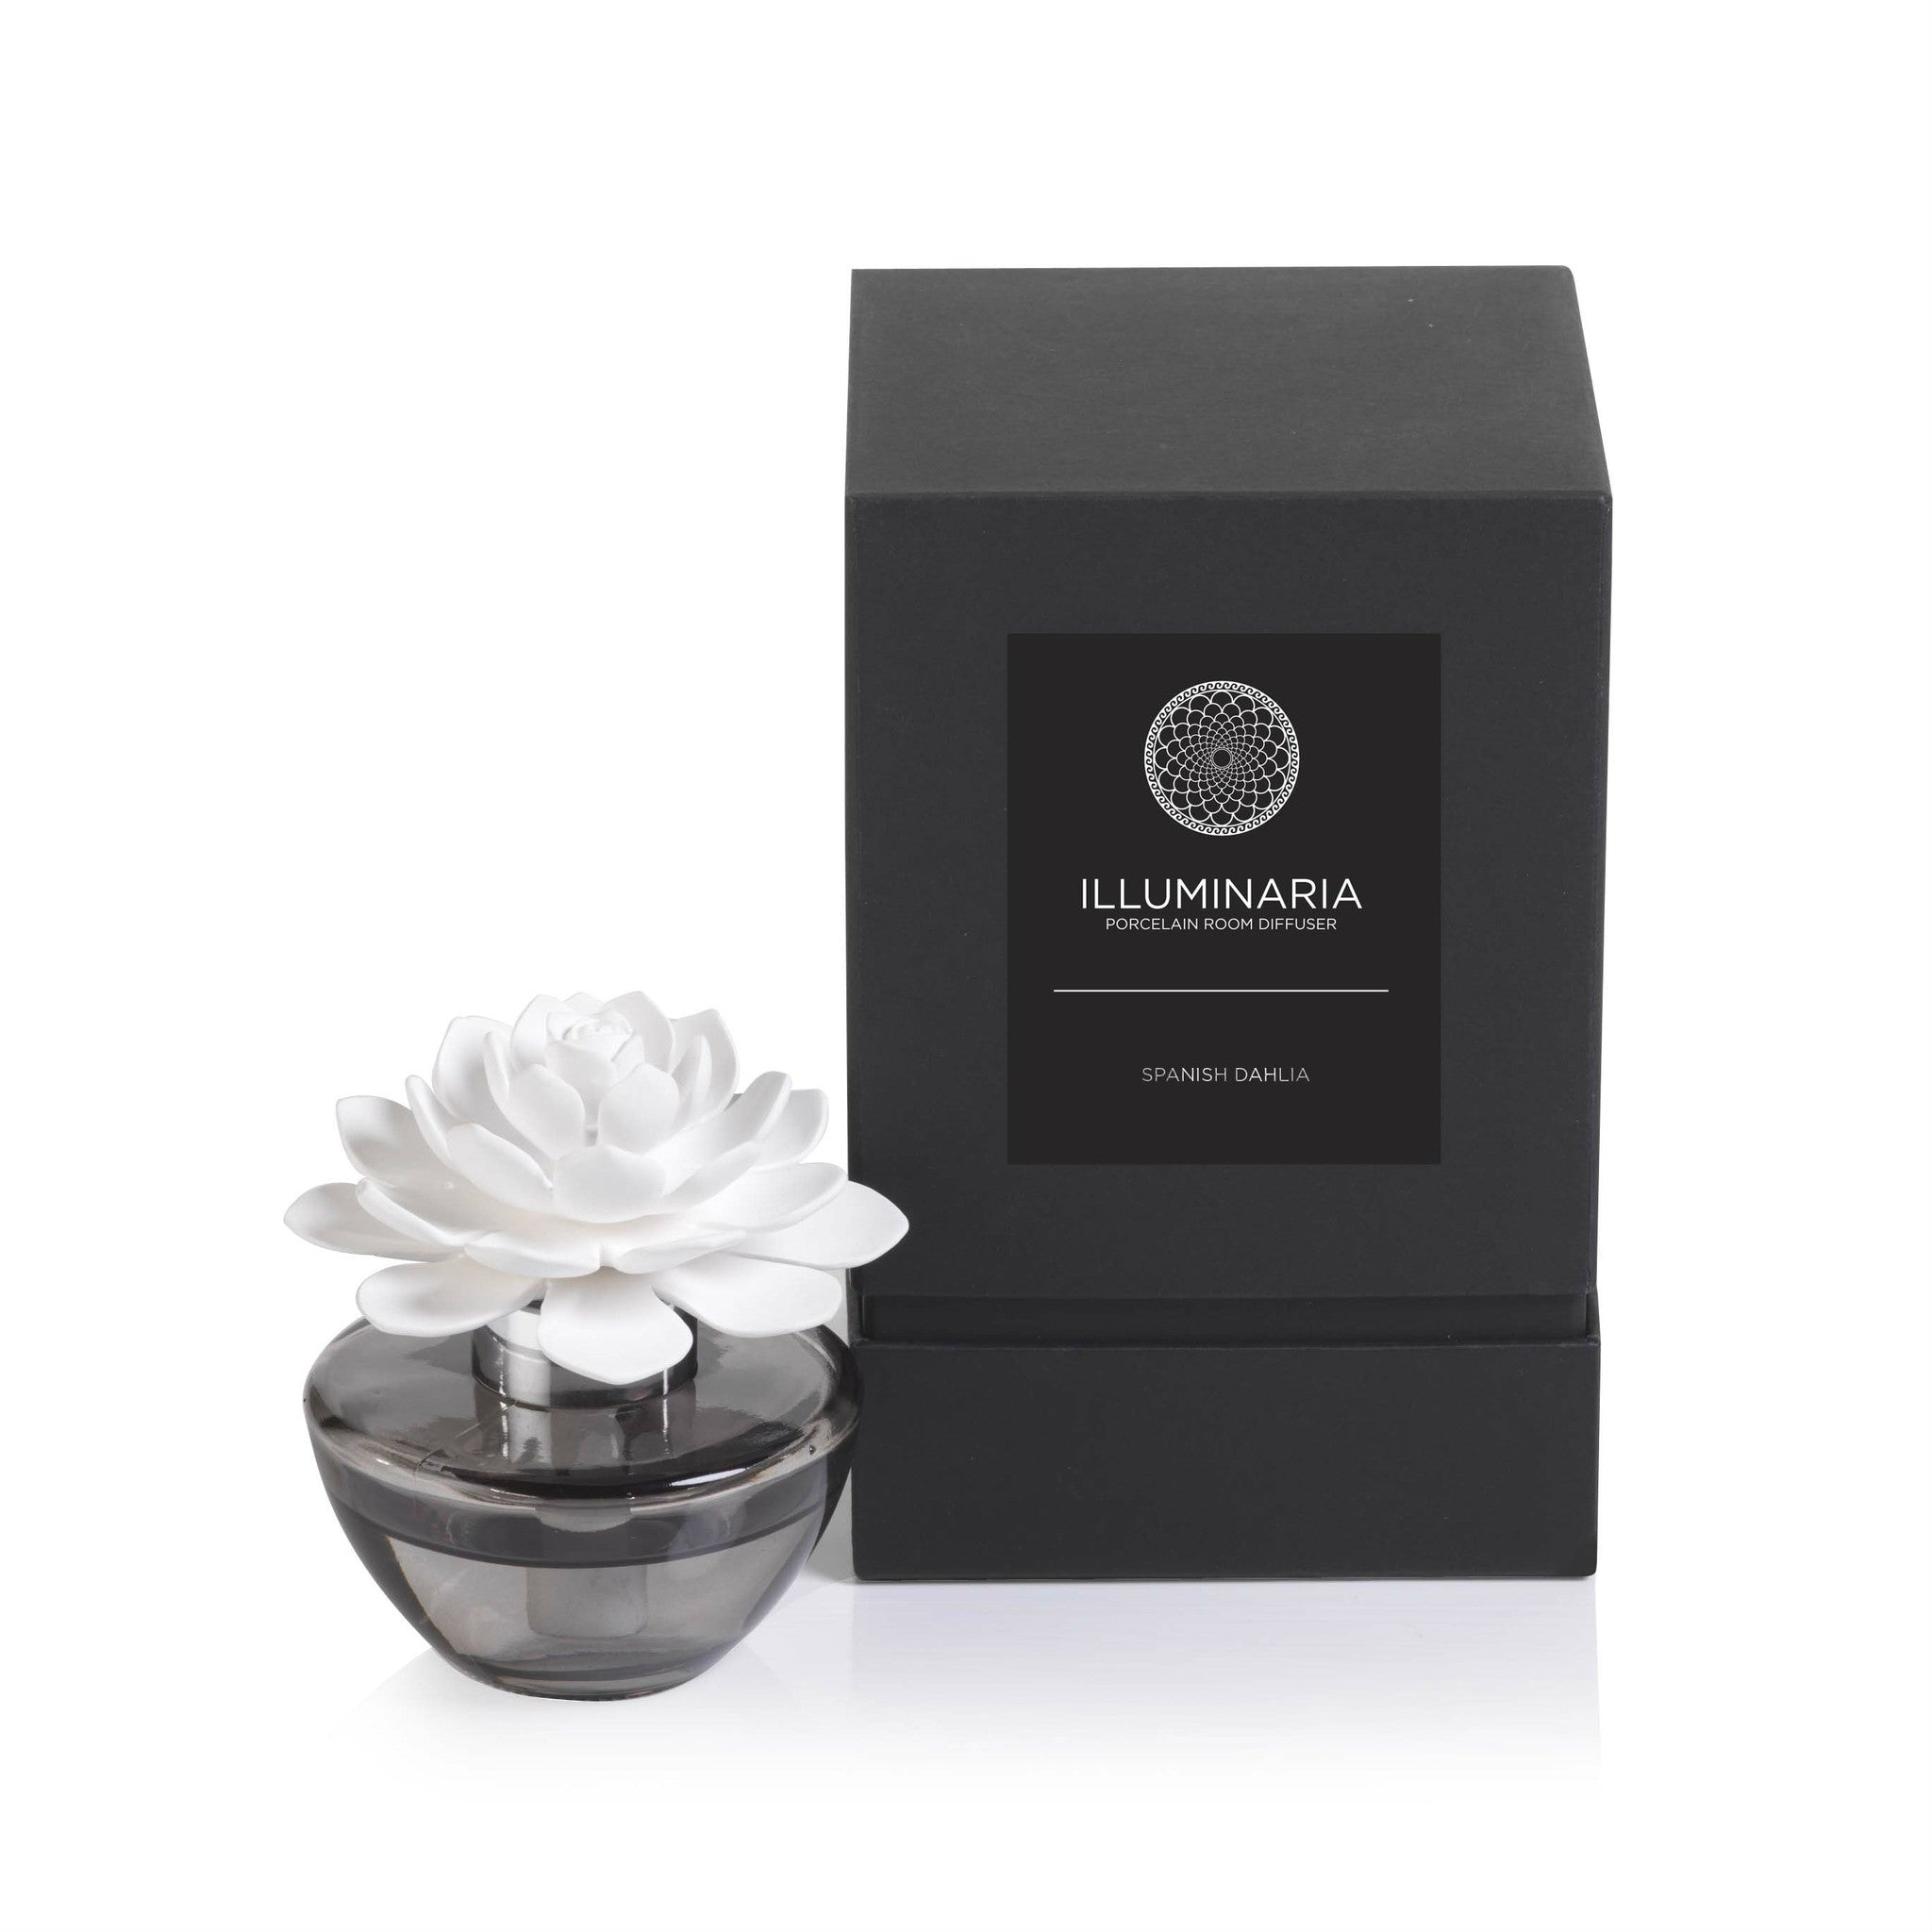 Illuminaria Porcelain Diffuser in Gray Bottle - CARLYLE AVENUE